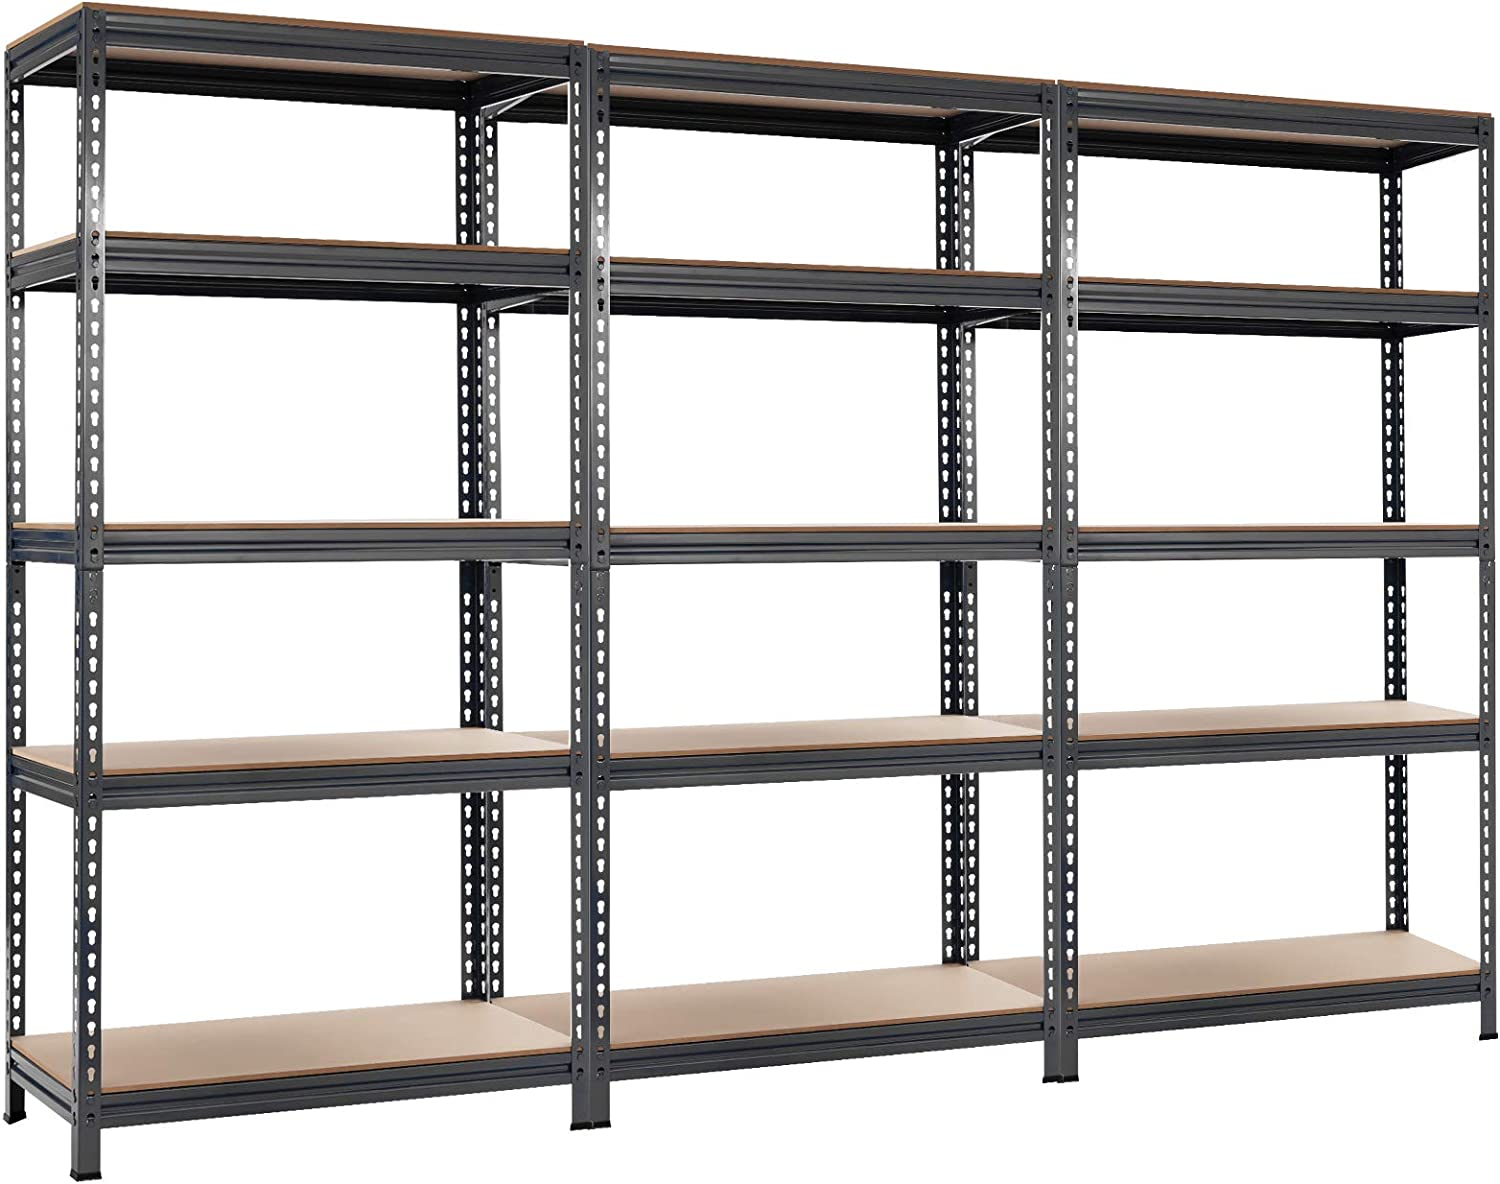 """Tangkula 5-Tier Steel Storage Shelves, 73"""" Heavy Duty Garage Shelf with Adjustable Shelves, Boltless Shelving Unit for Free Combination, Metal Muscle Rack for Home Office Garage (3, Grey)"""